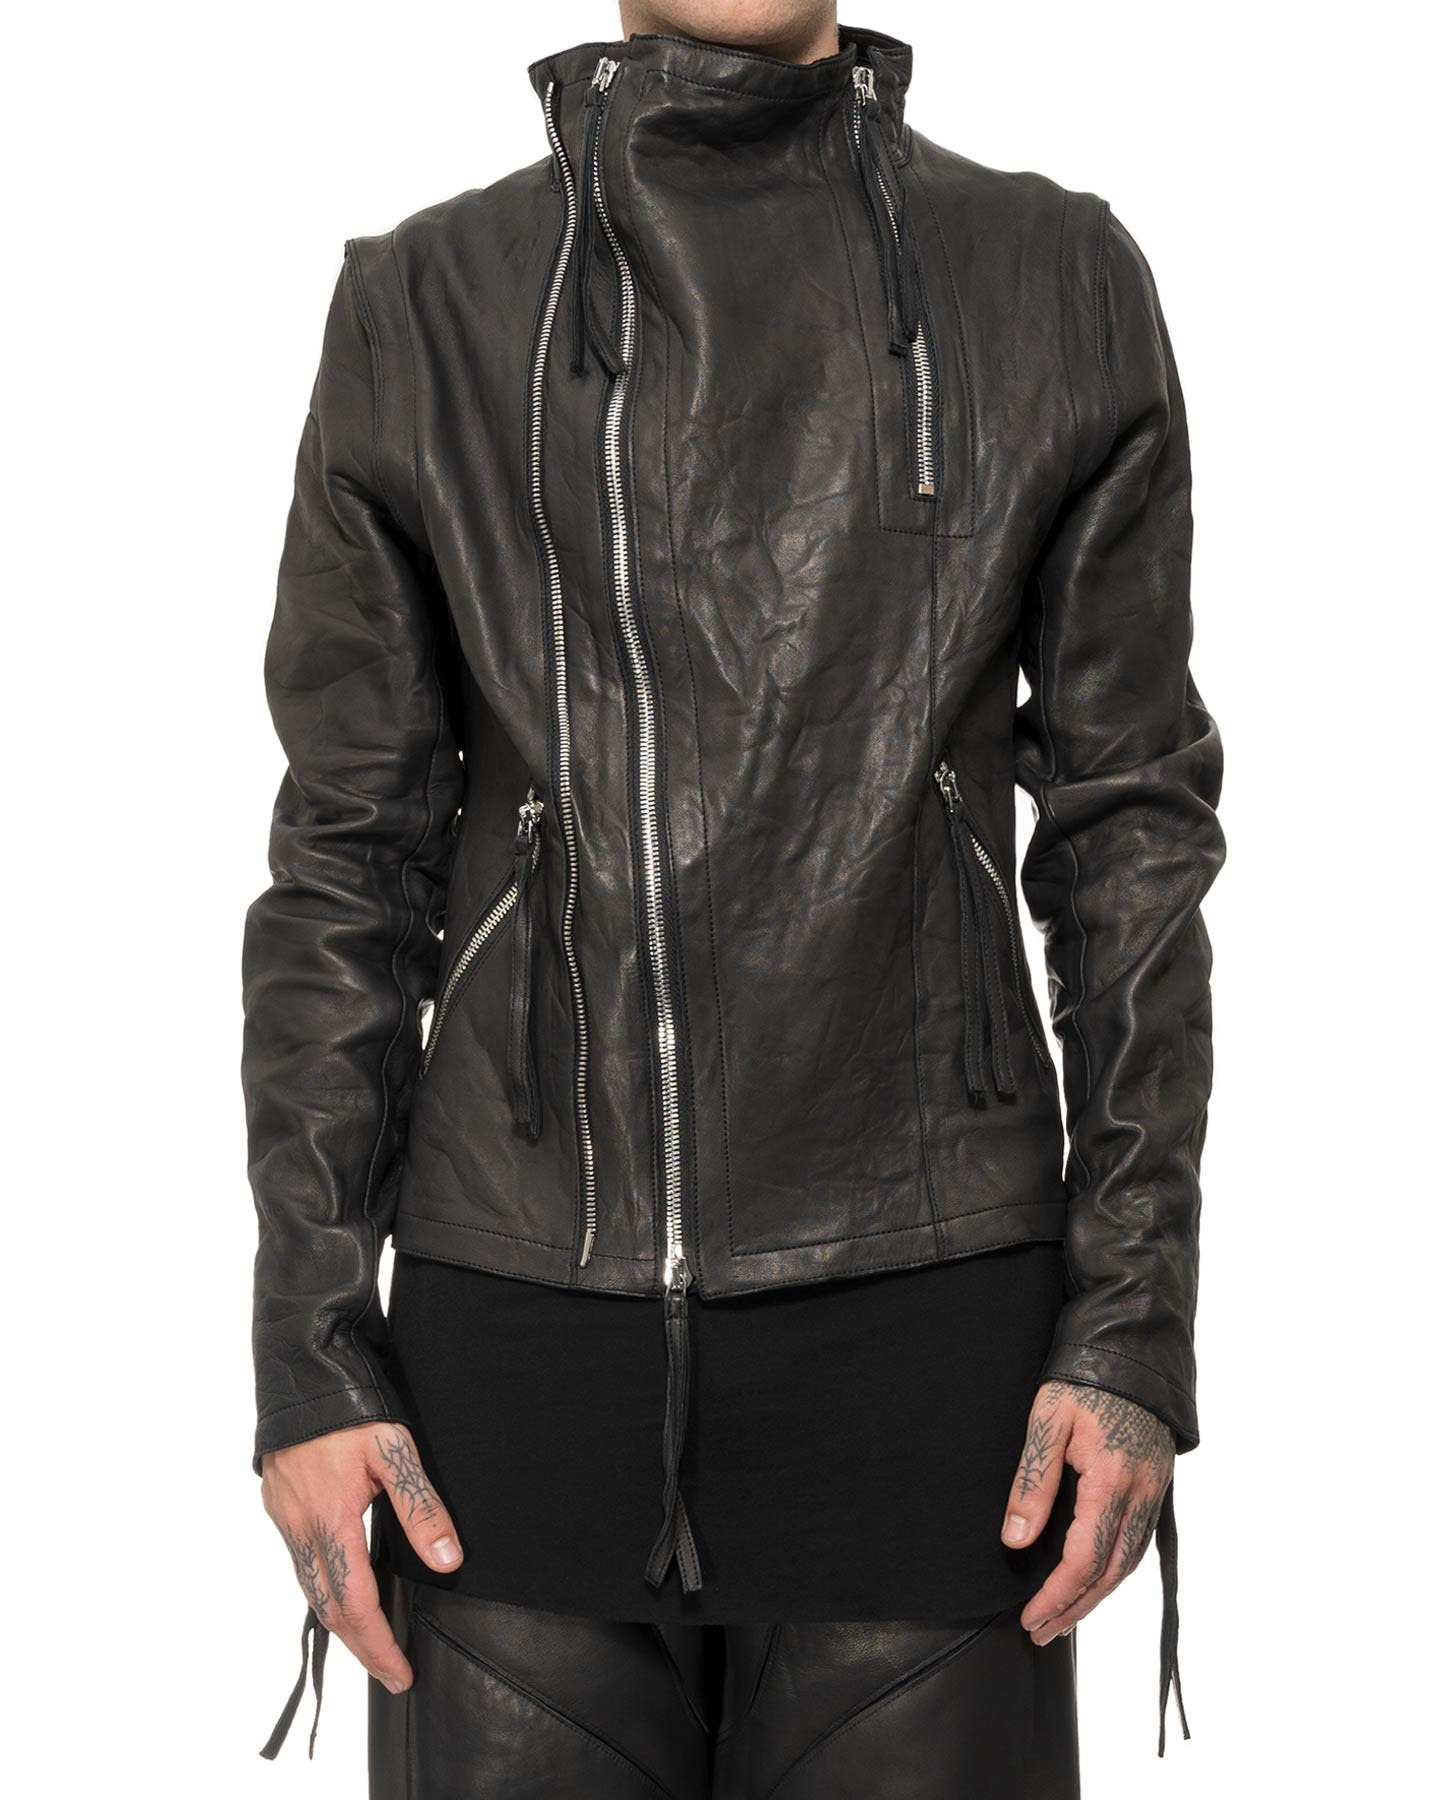 DOUBLE ZIPPER HIGH NECK LEATHER JACKET